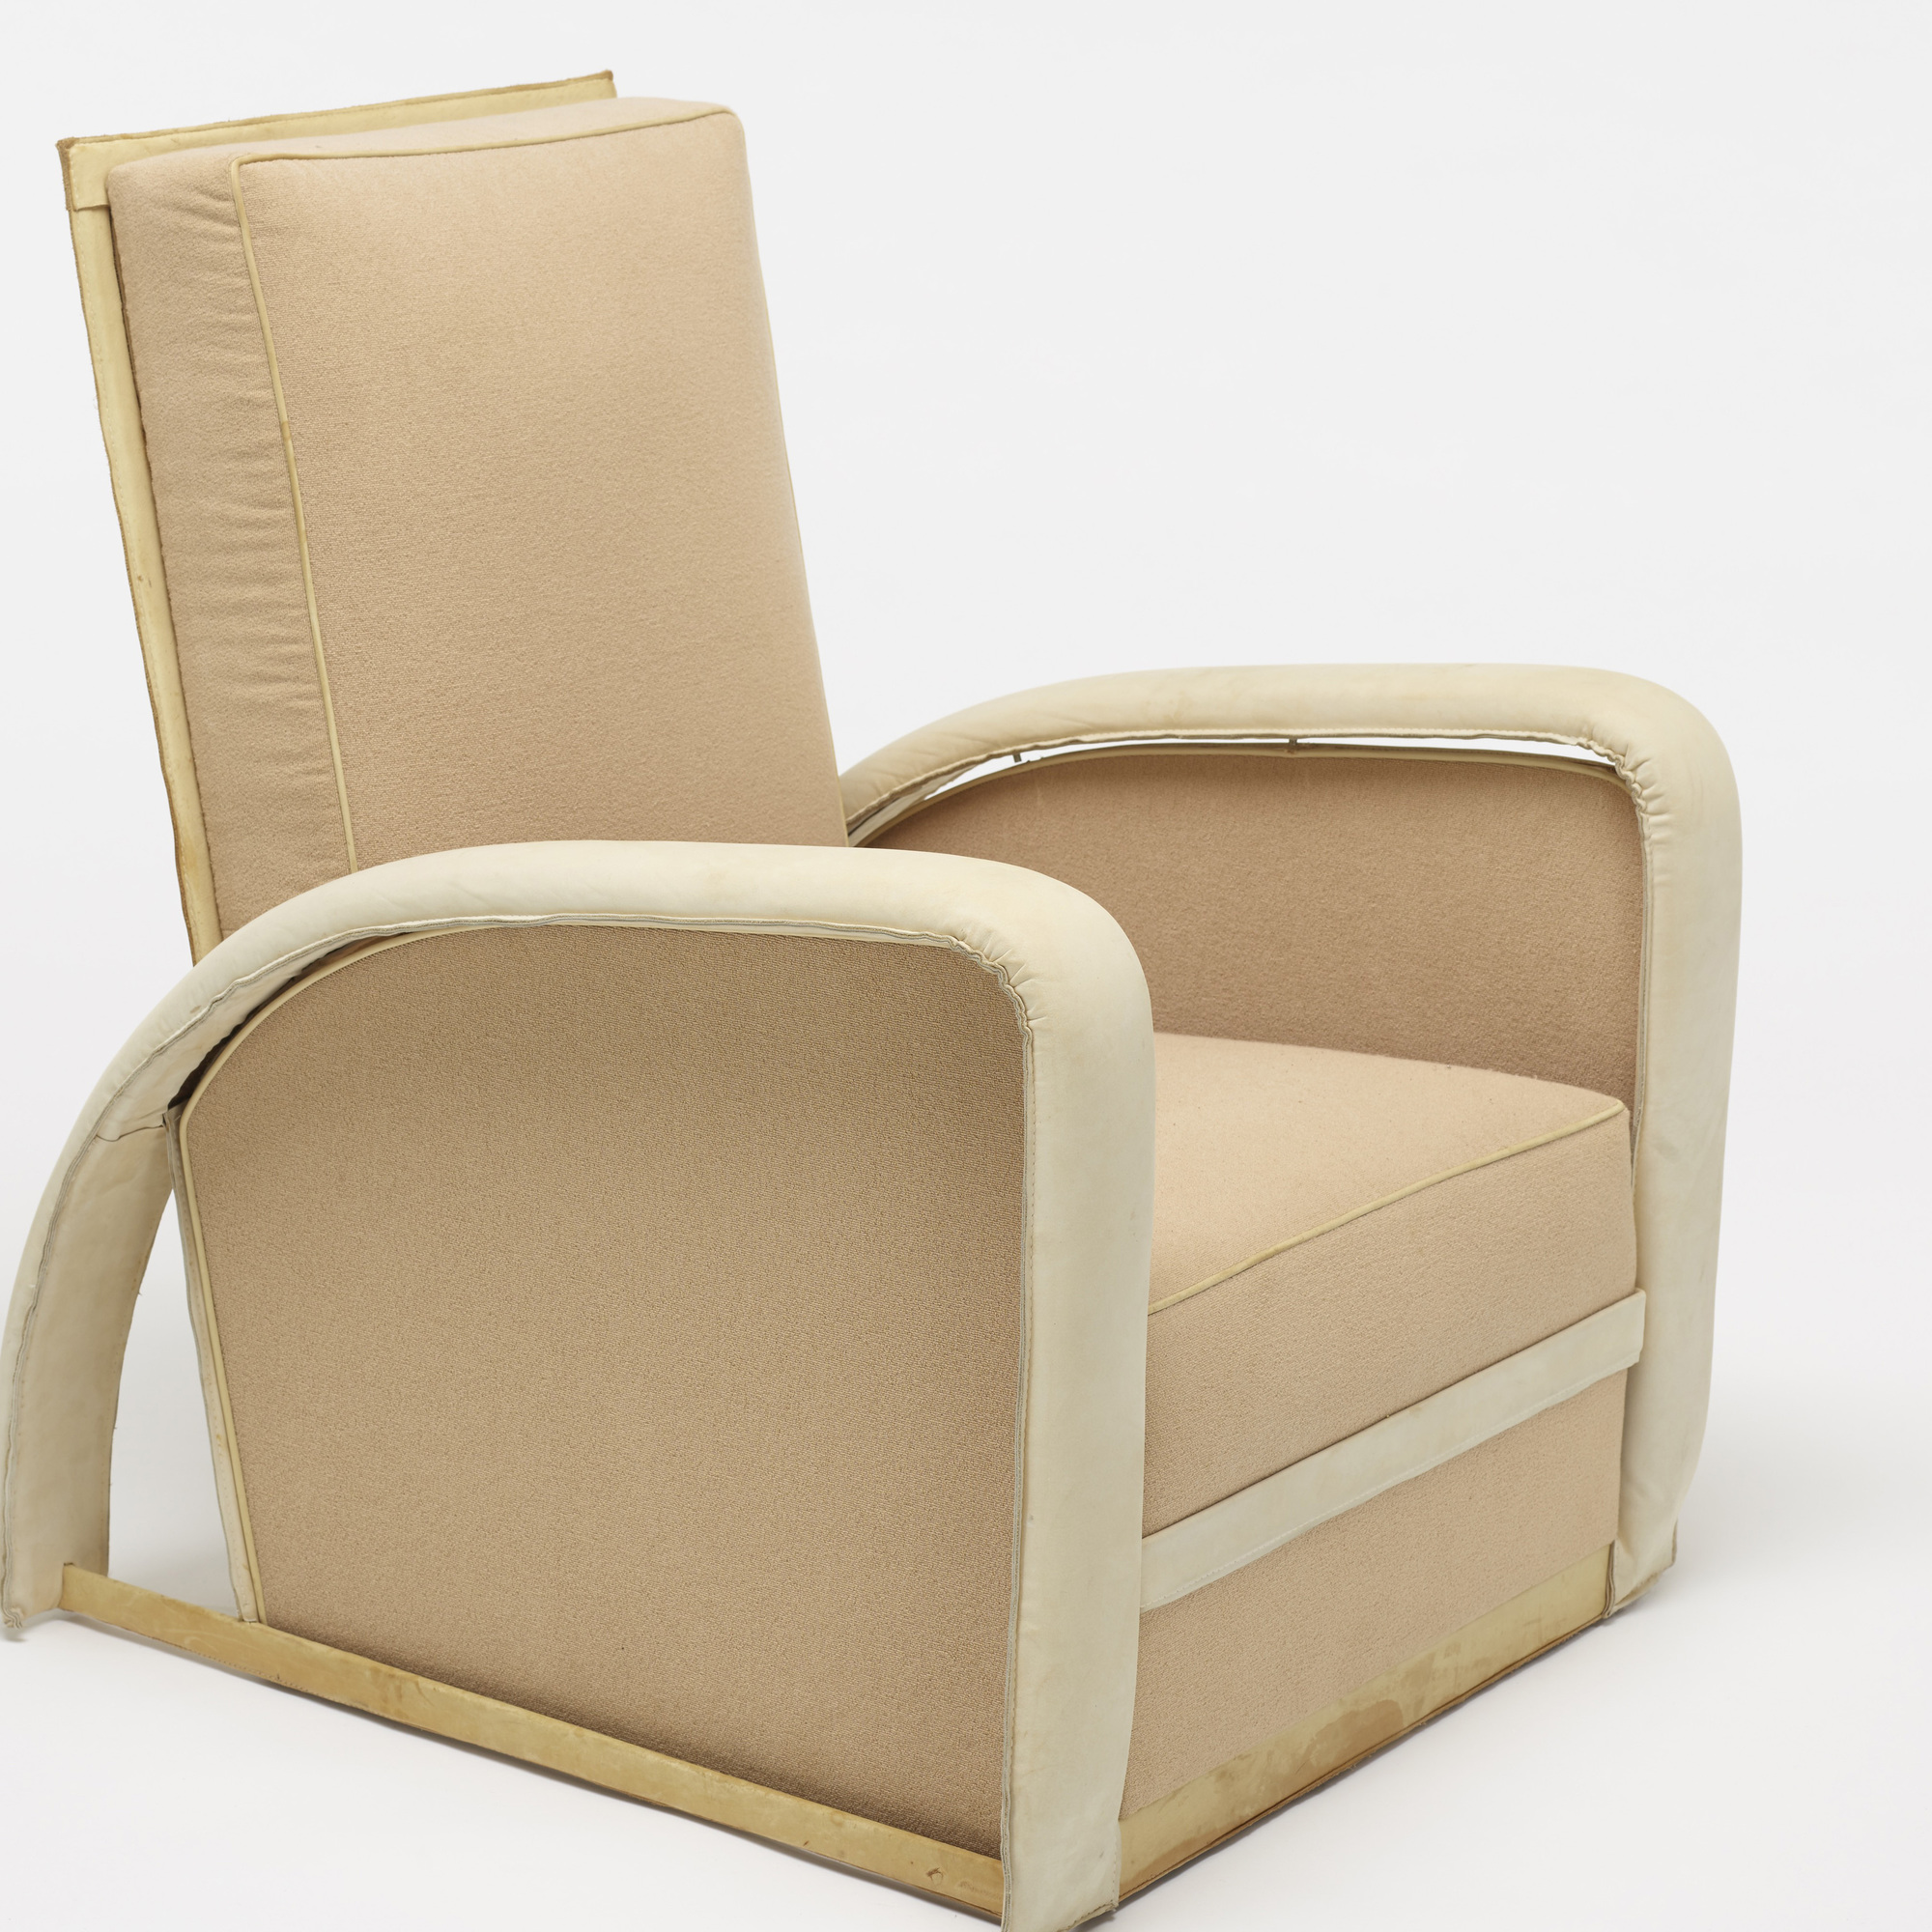 398: Jacques Adnet / armchair (4 of 4)